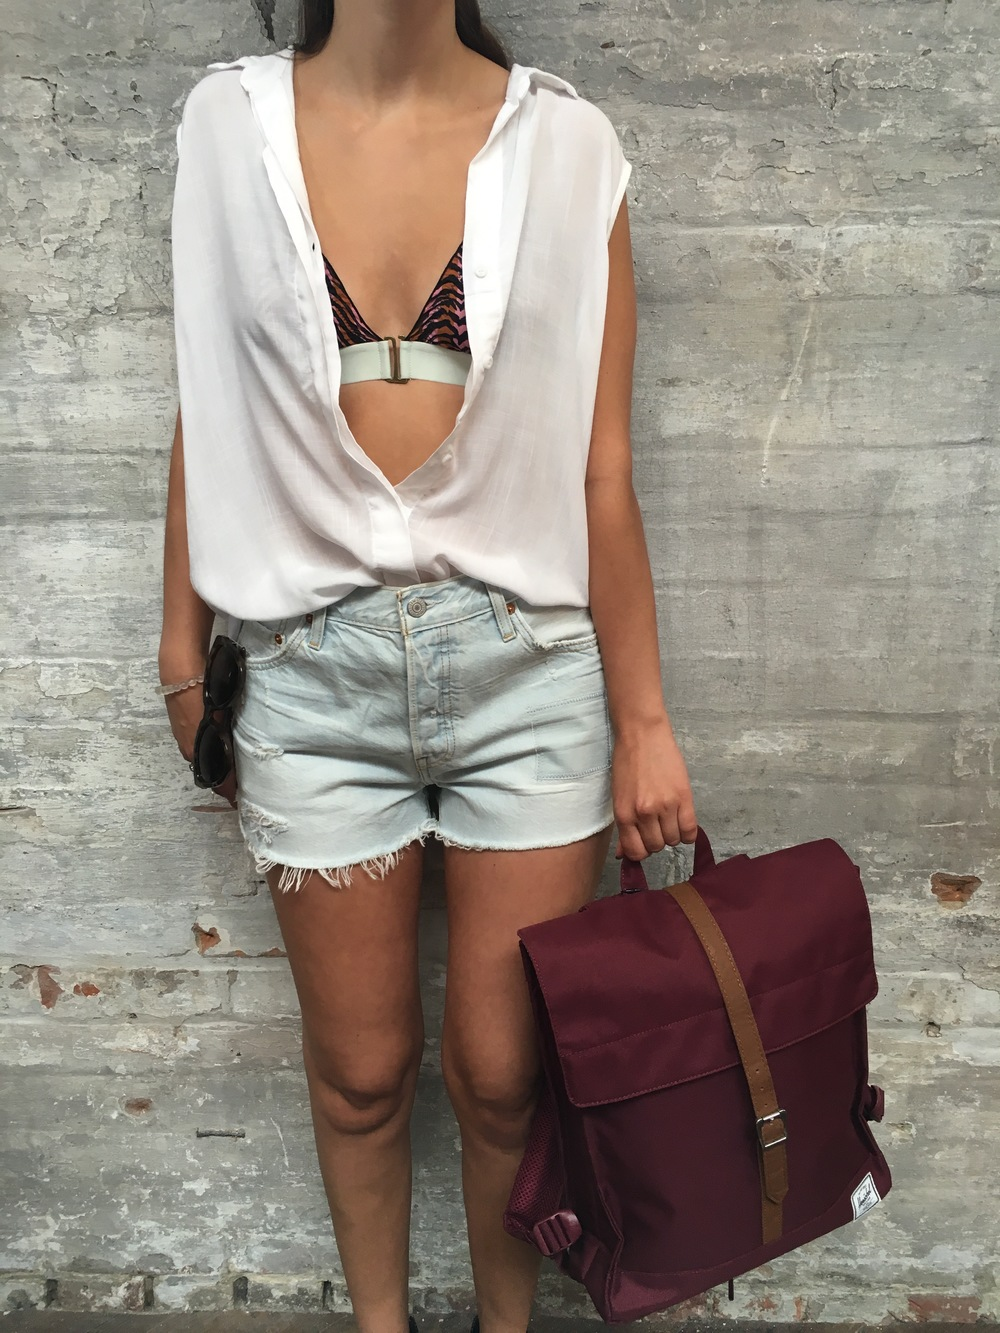 Love Stories Bathing Suit Top $110 & Bottom $75 Bella Dahl Sleeveless Crosshatch blouse $150 Levi's Shorts $69 Herschel City Backpack $60 Le Specs Sunglasses $118